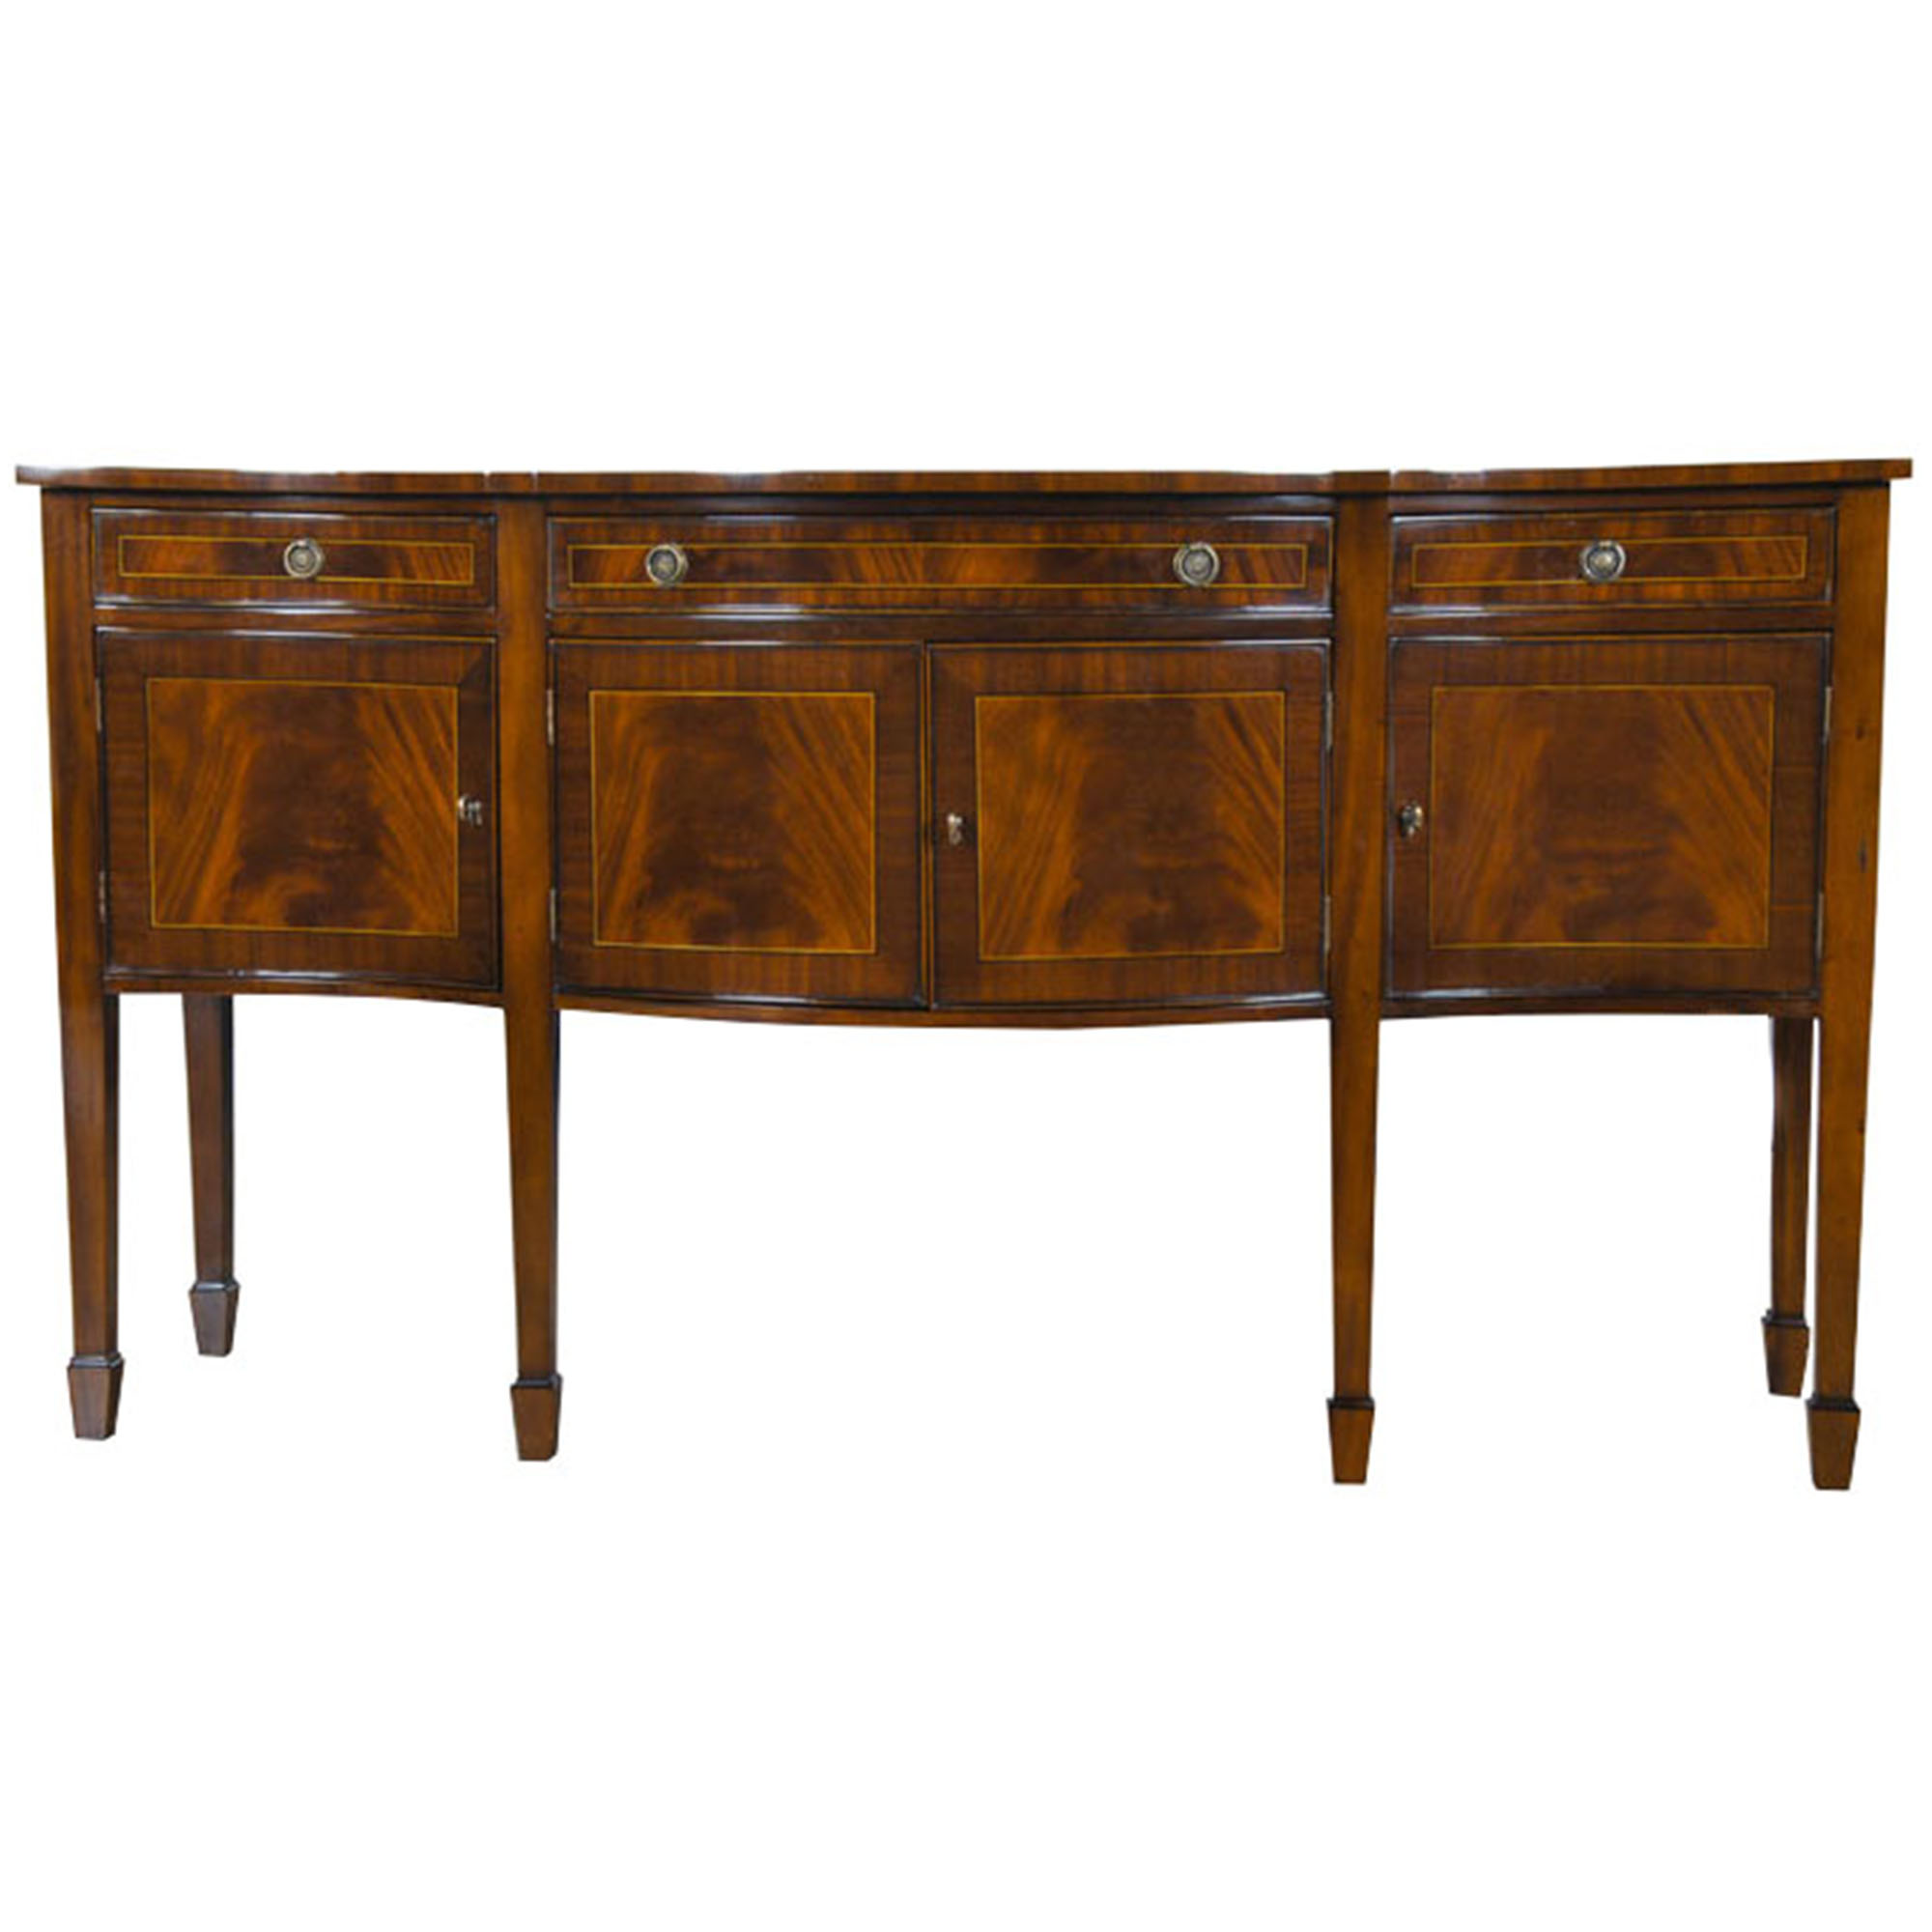 Home furniture dining room sideboards large for Mahogany dining room furniture